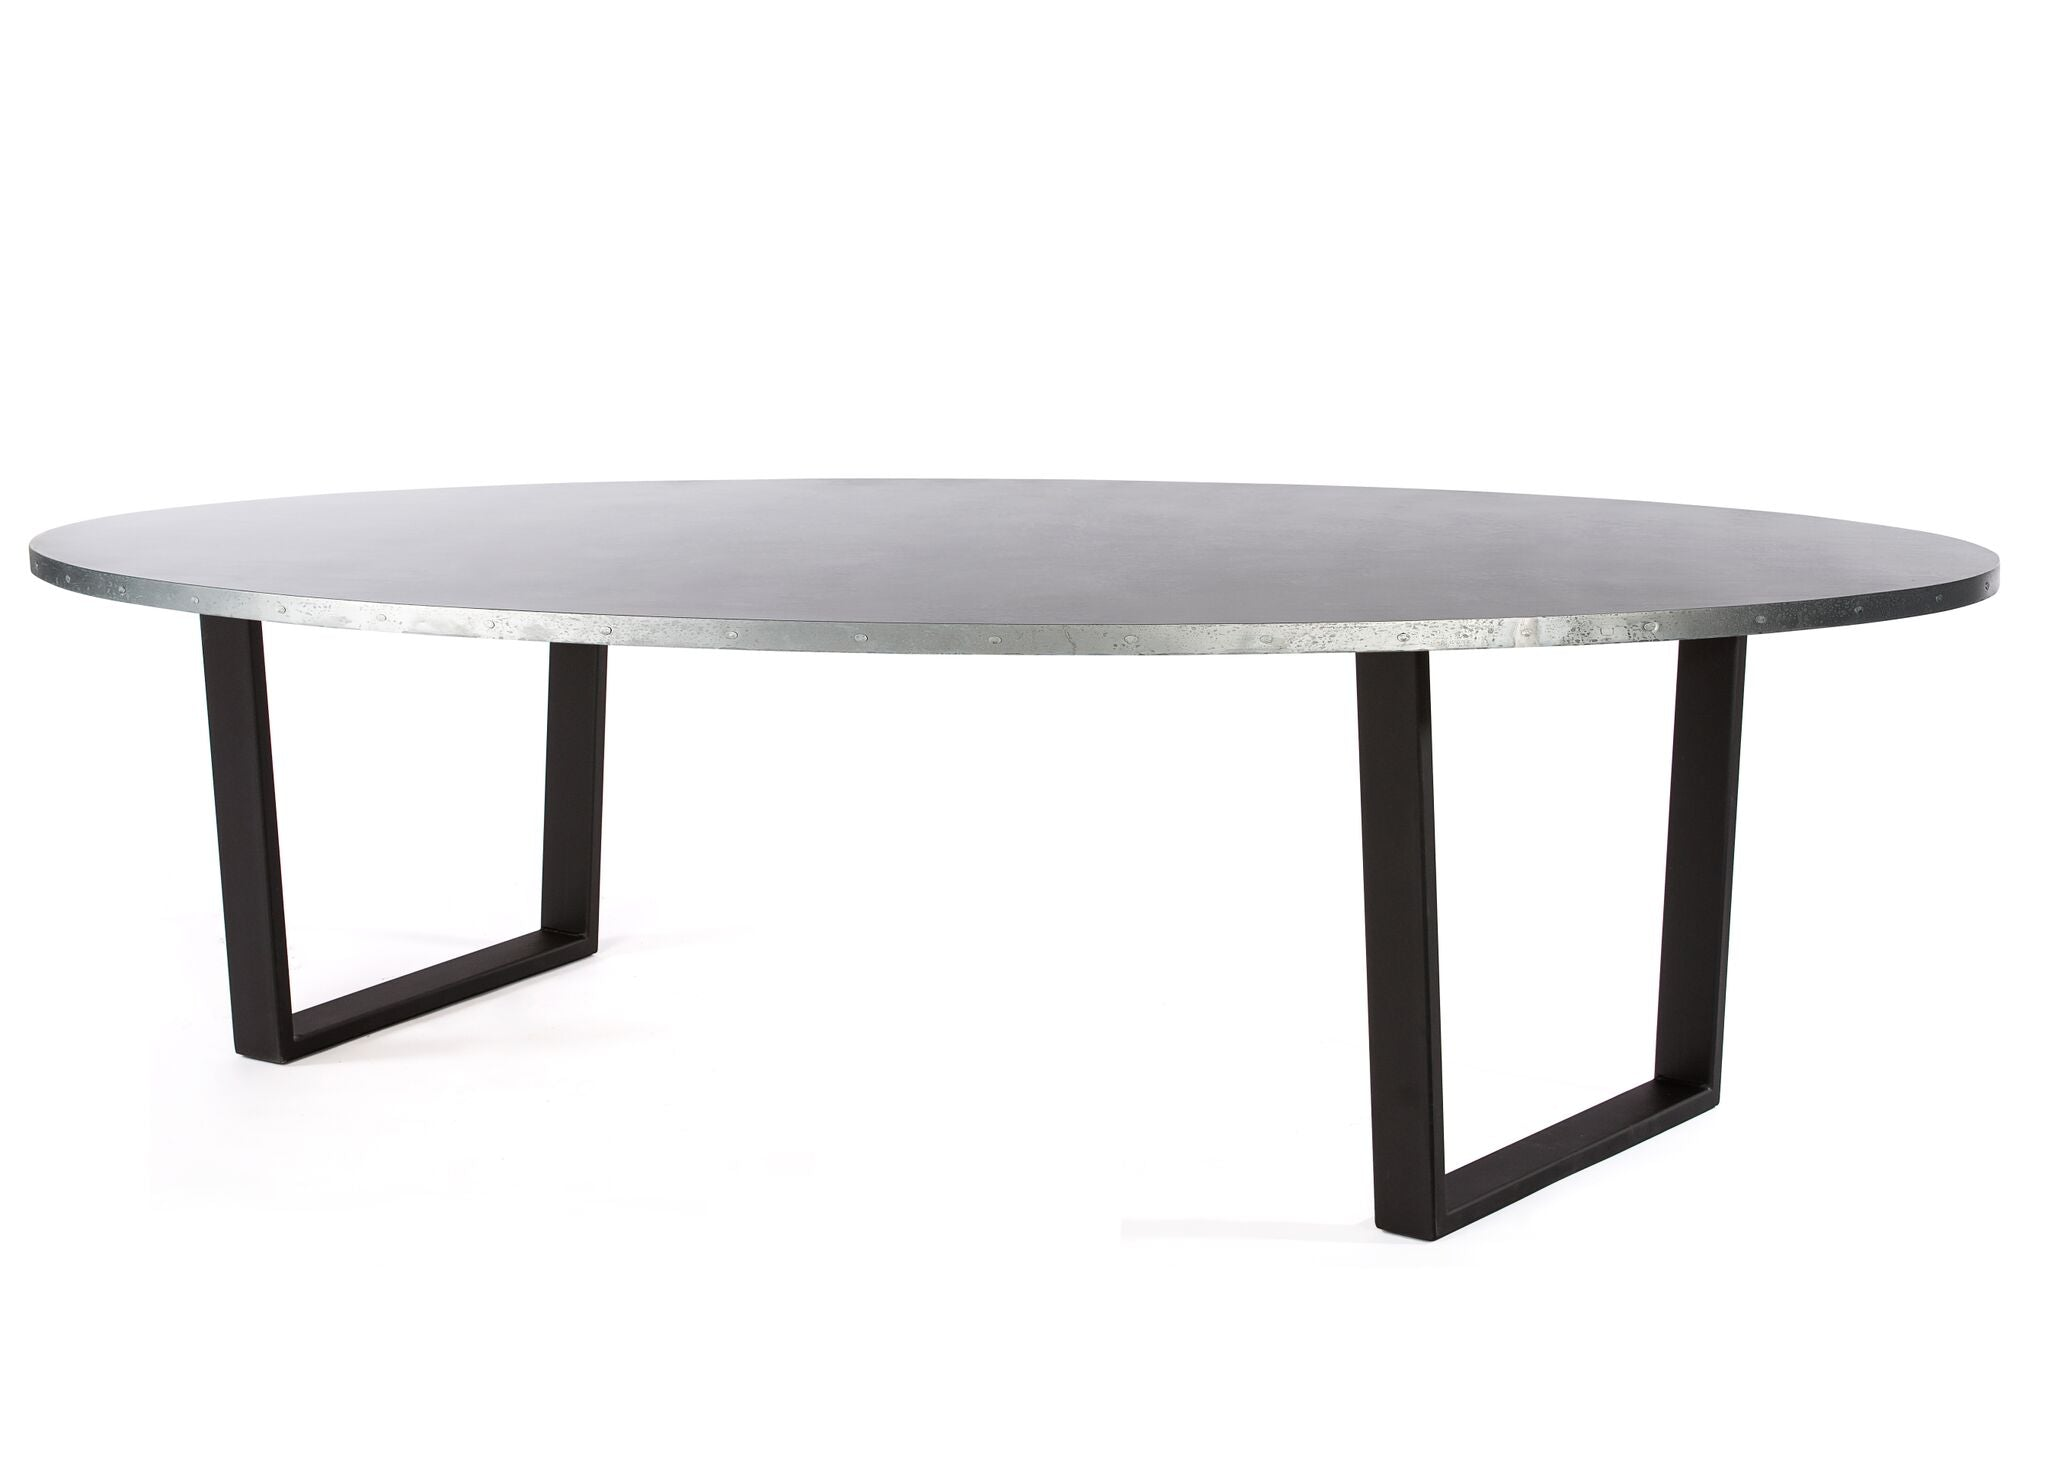 "Zinc Oval Tables | Trenton Table | CLASSIC | Natural Steel | CUSTOM SIZE 72""L 39""W 30""H 